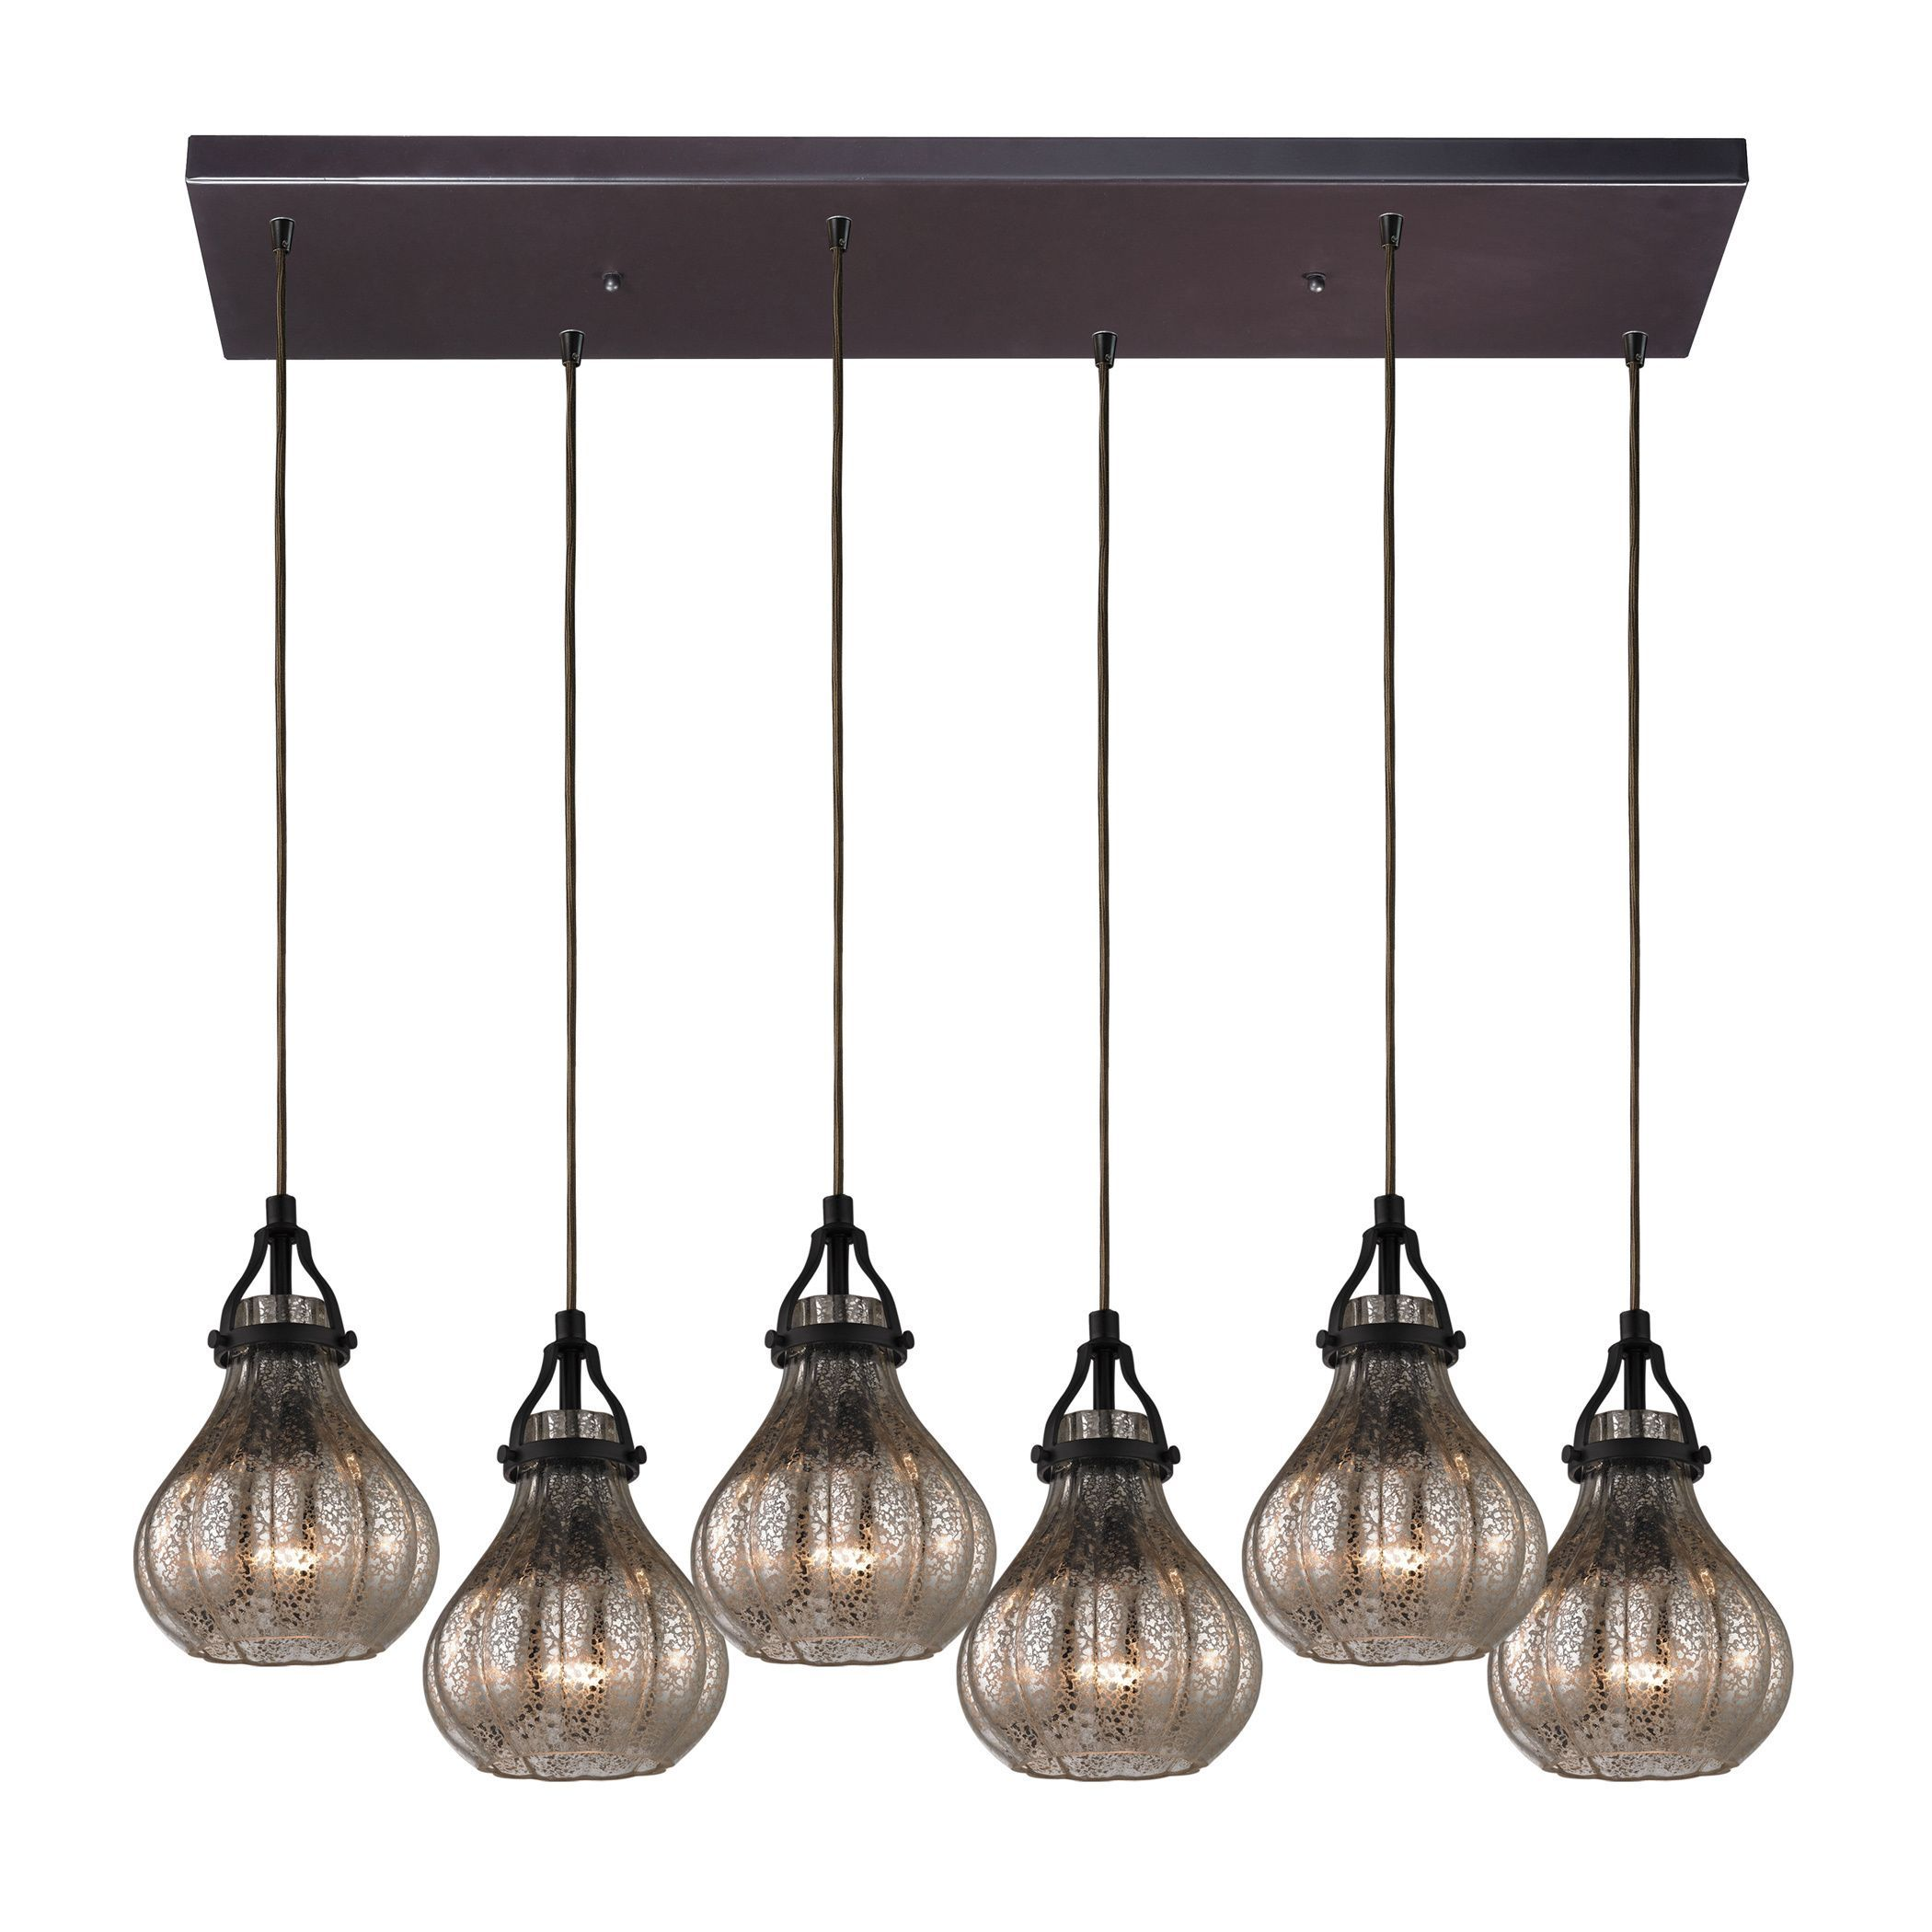 Elk lighting danica oil rubbed bronze 6 light bulb chandelier elk lighting danica oil rubbed bronze 6 light bulb chandelier danica oil rubbed arubaitofo Image collections